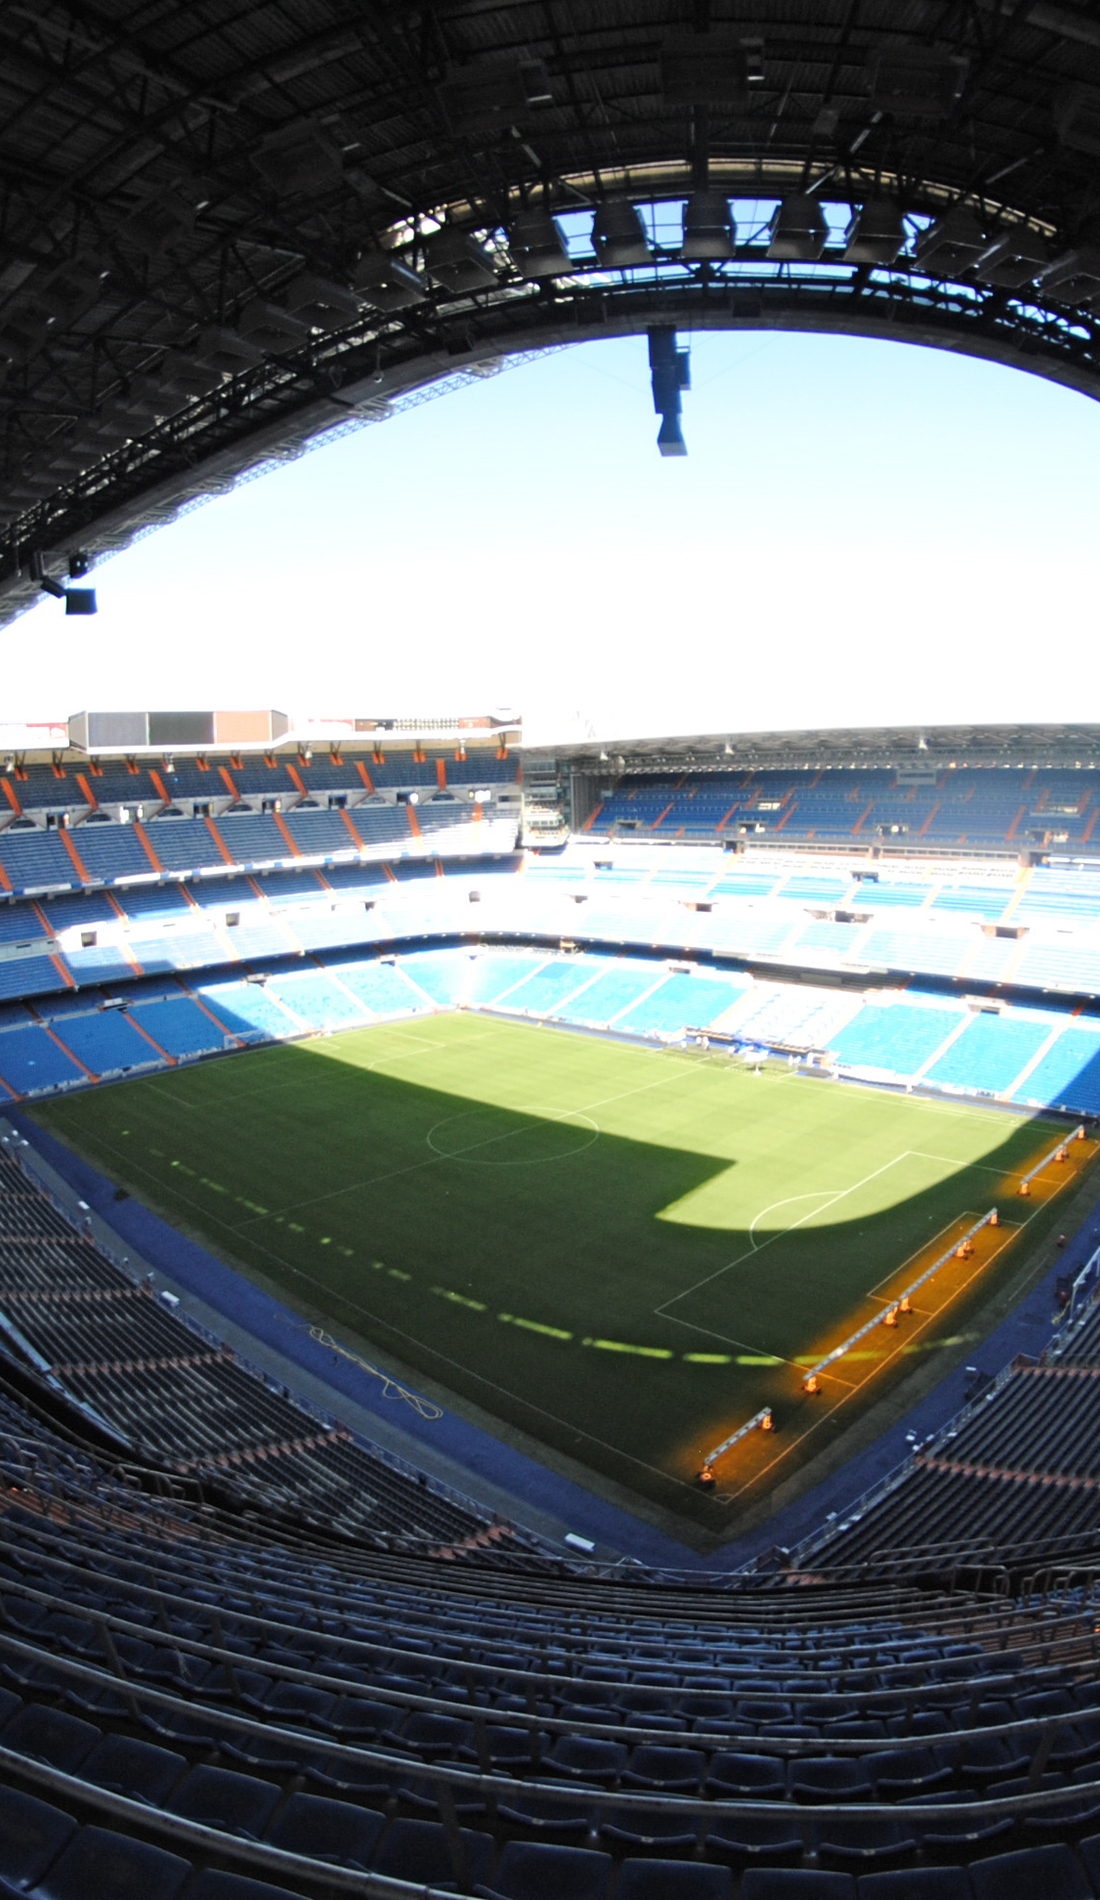 A Real Madrid CF live event